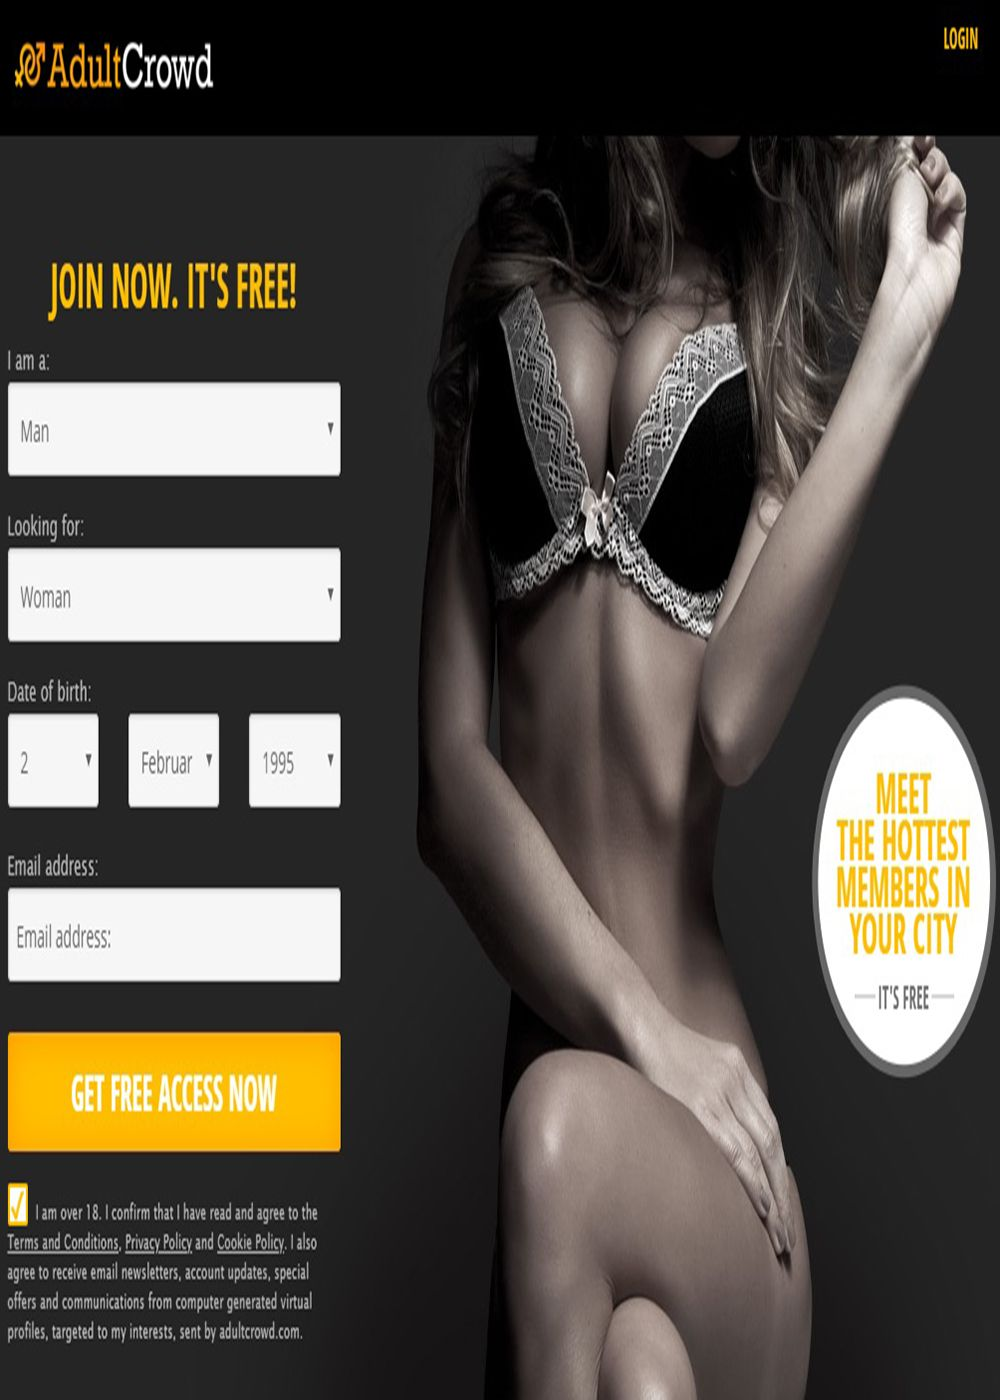 Adult crowd dating site bewertung